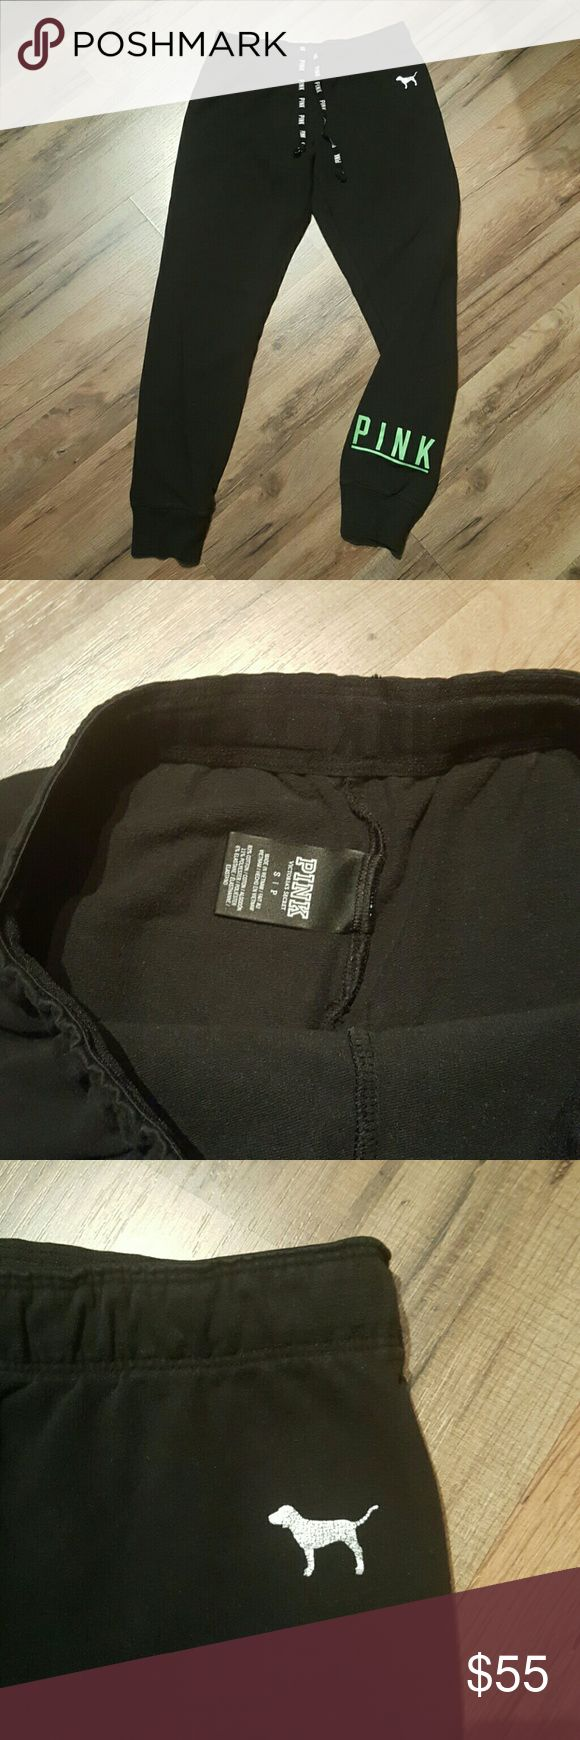 """VS PINK Black Gym Pants Black with neon green PINK logo on otter bottom left leg. Silver metallic PINK dog logo is semi cracked (pic 3) and well-loved. Drawstrings.  SIZE SMALL  WAIST 29"""" (unstretched) INSEAM 27.5""""  NO Trades  Open to offers. Use the offer button, comment offers will be ignored and NOT CONSIDERED.  BUNDLE DISCOUNT: 10% OFF FOR 2 OR MORE ITEMS. PINK Victoria's Secret Pants"""